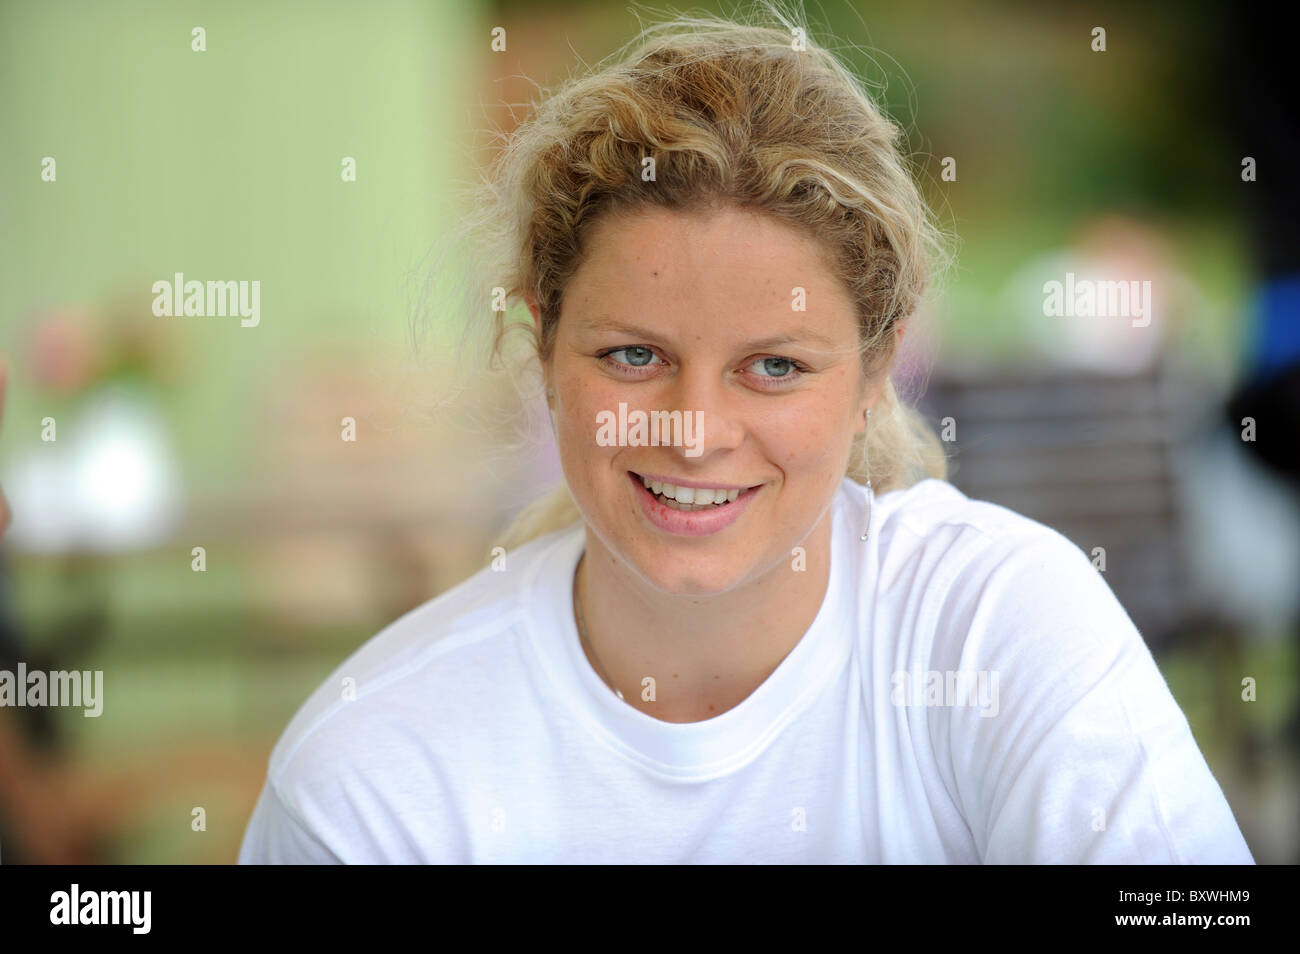 Belgian professional tennis player Kim Clijsters looking relaxed